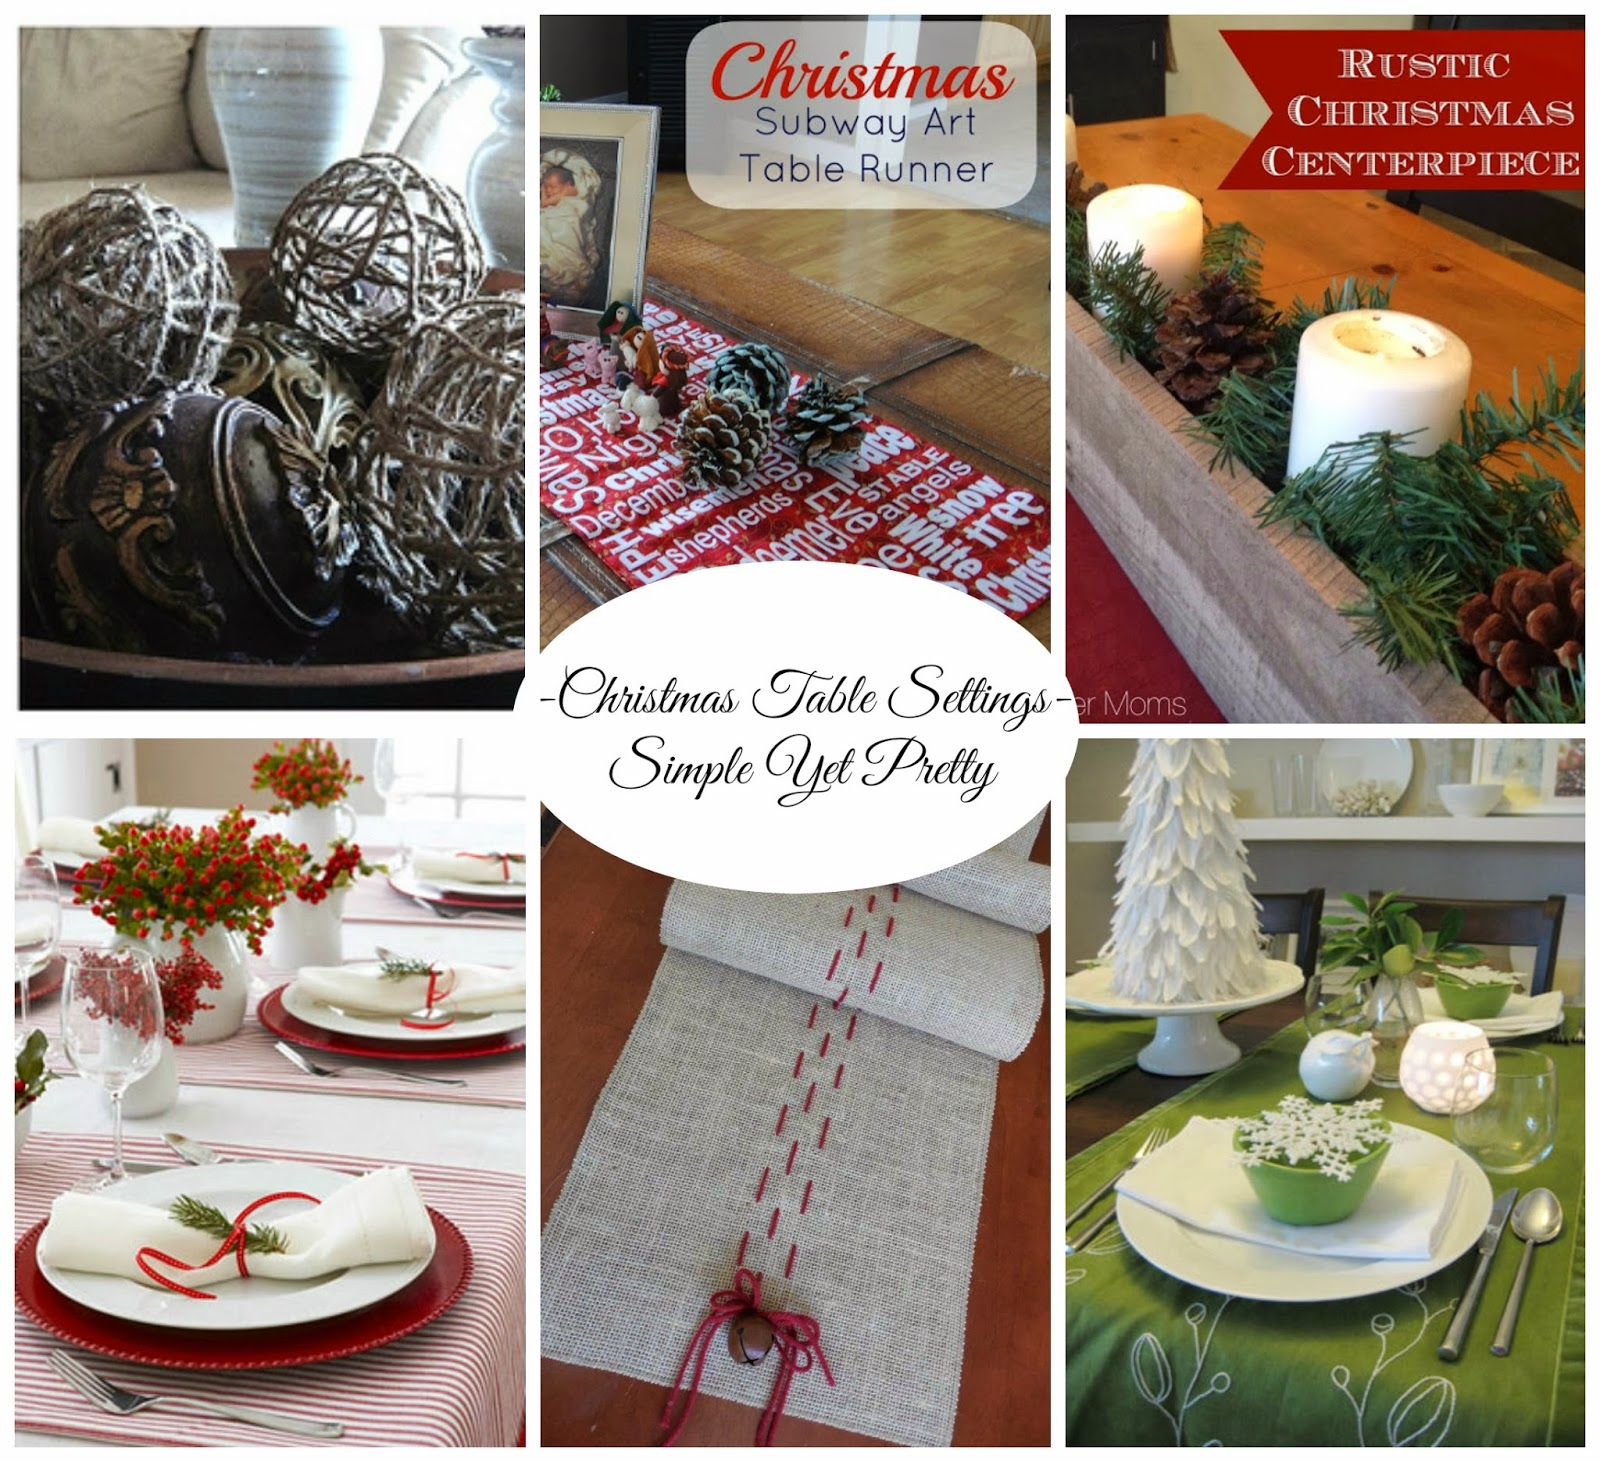 Renovating519 Christmas Table Settings Simple Yet Pretty